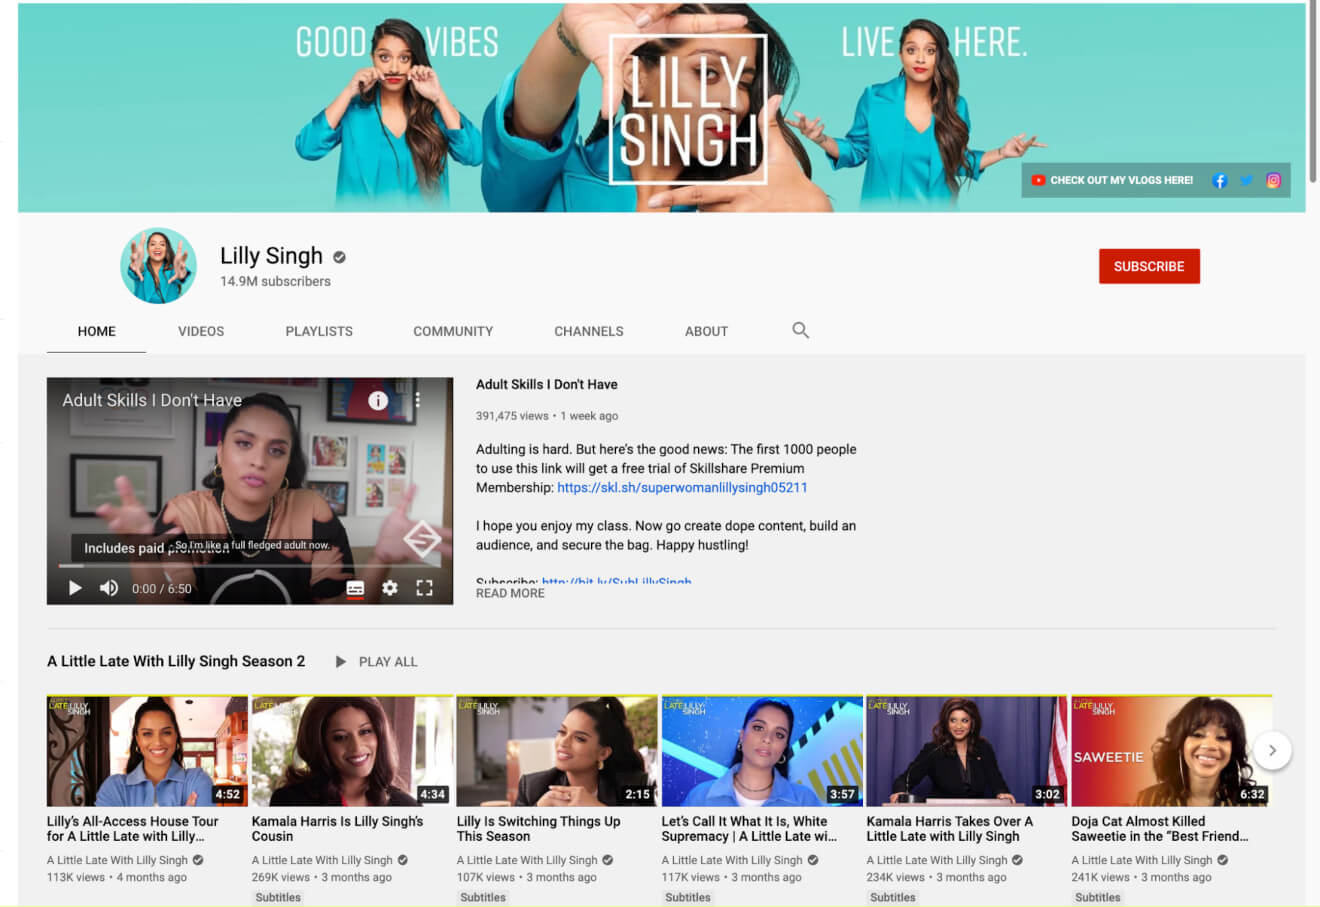 lilly singh content creator